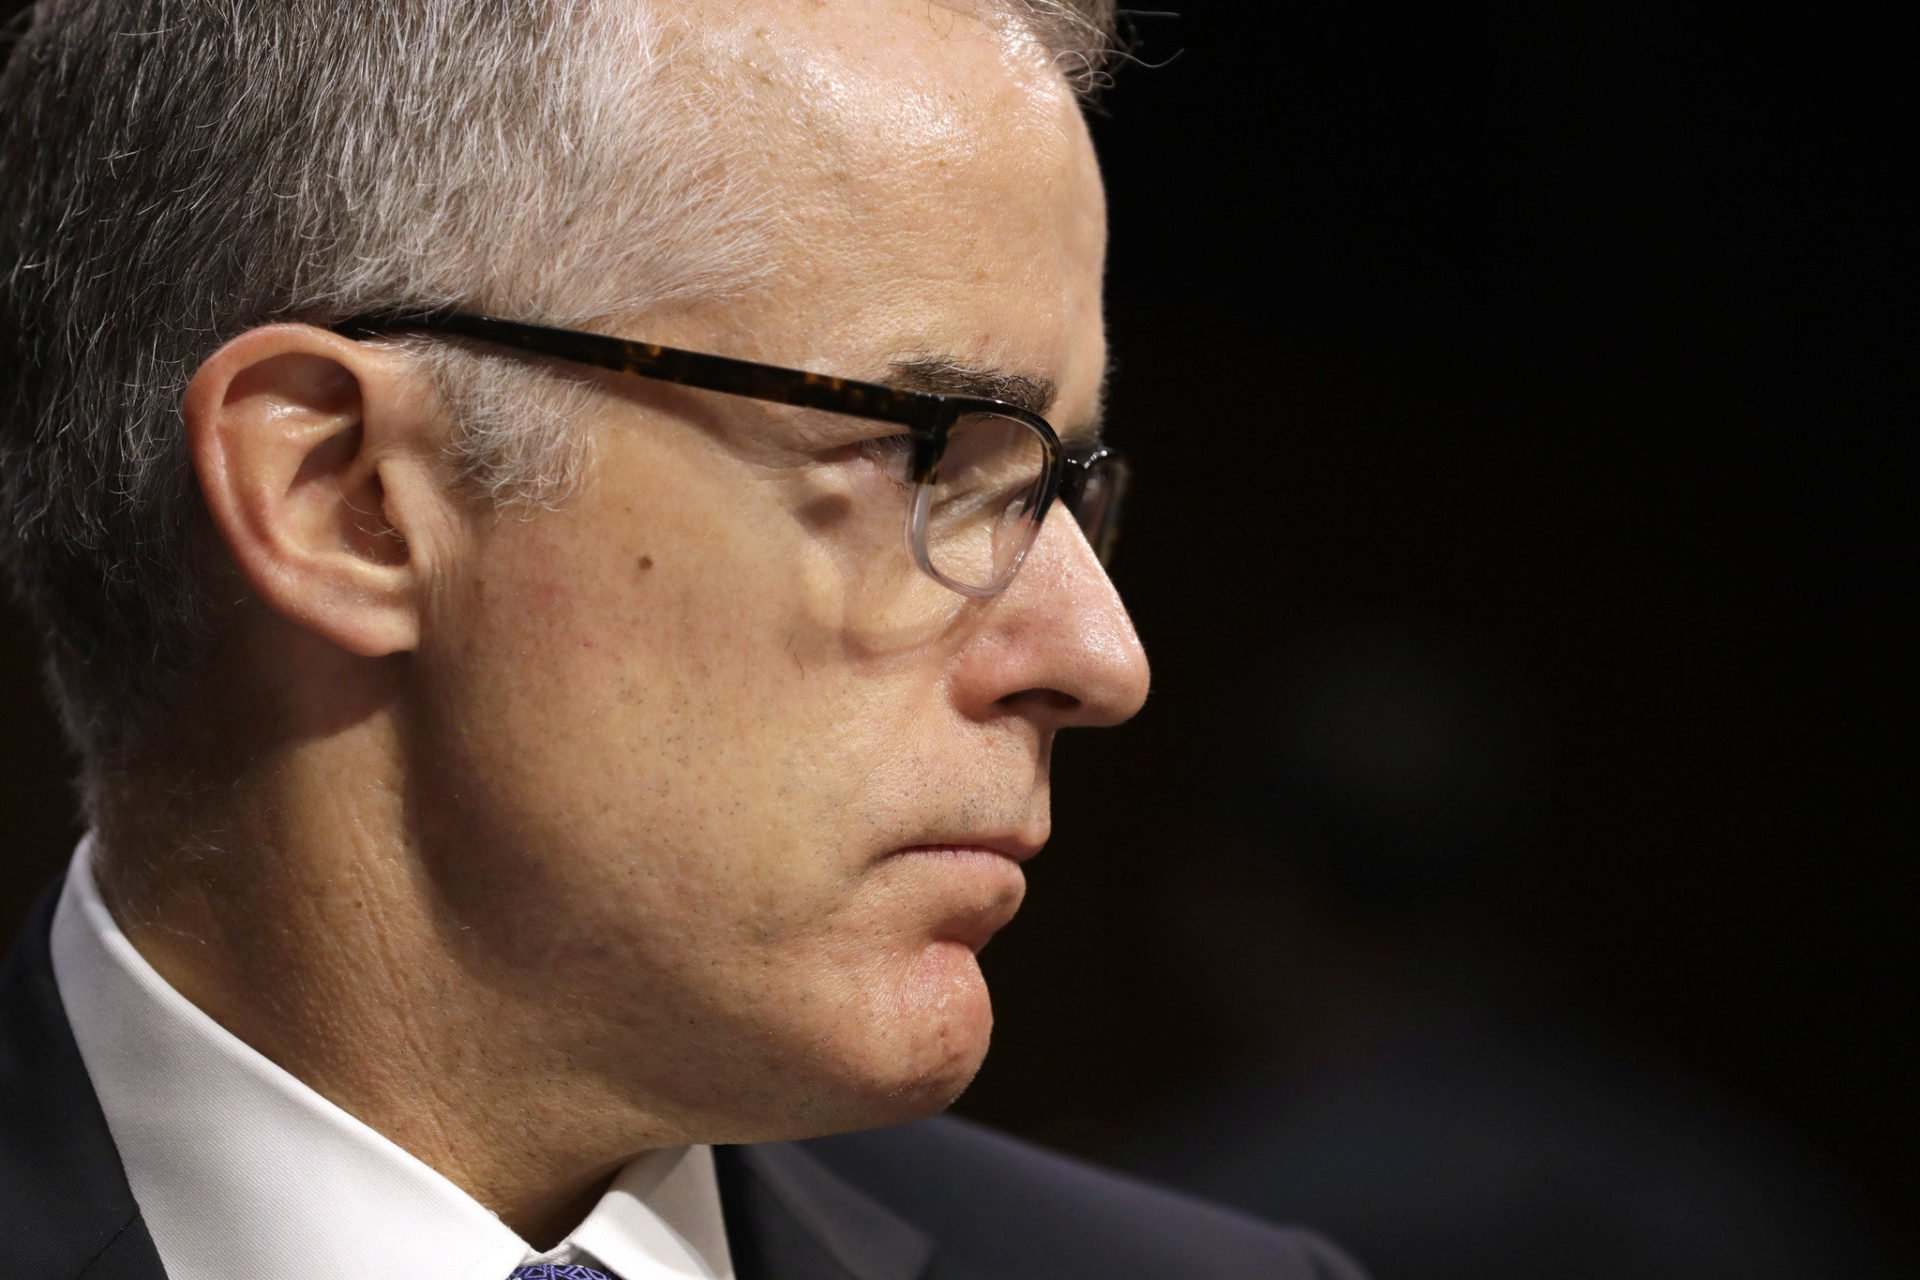 McCabe Denies He Lacked Candor But Admits Answers to Investigators Werent Fully Accurate